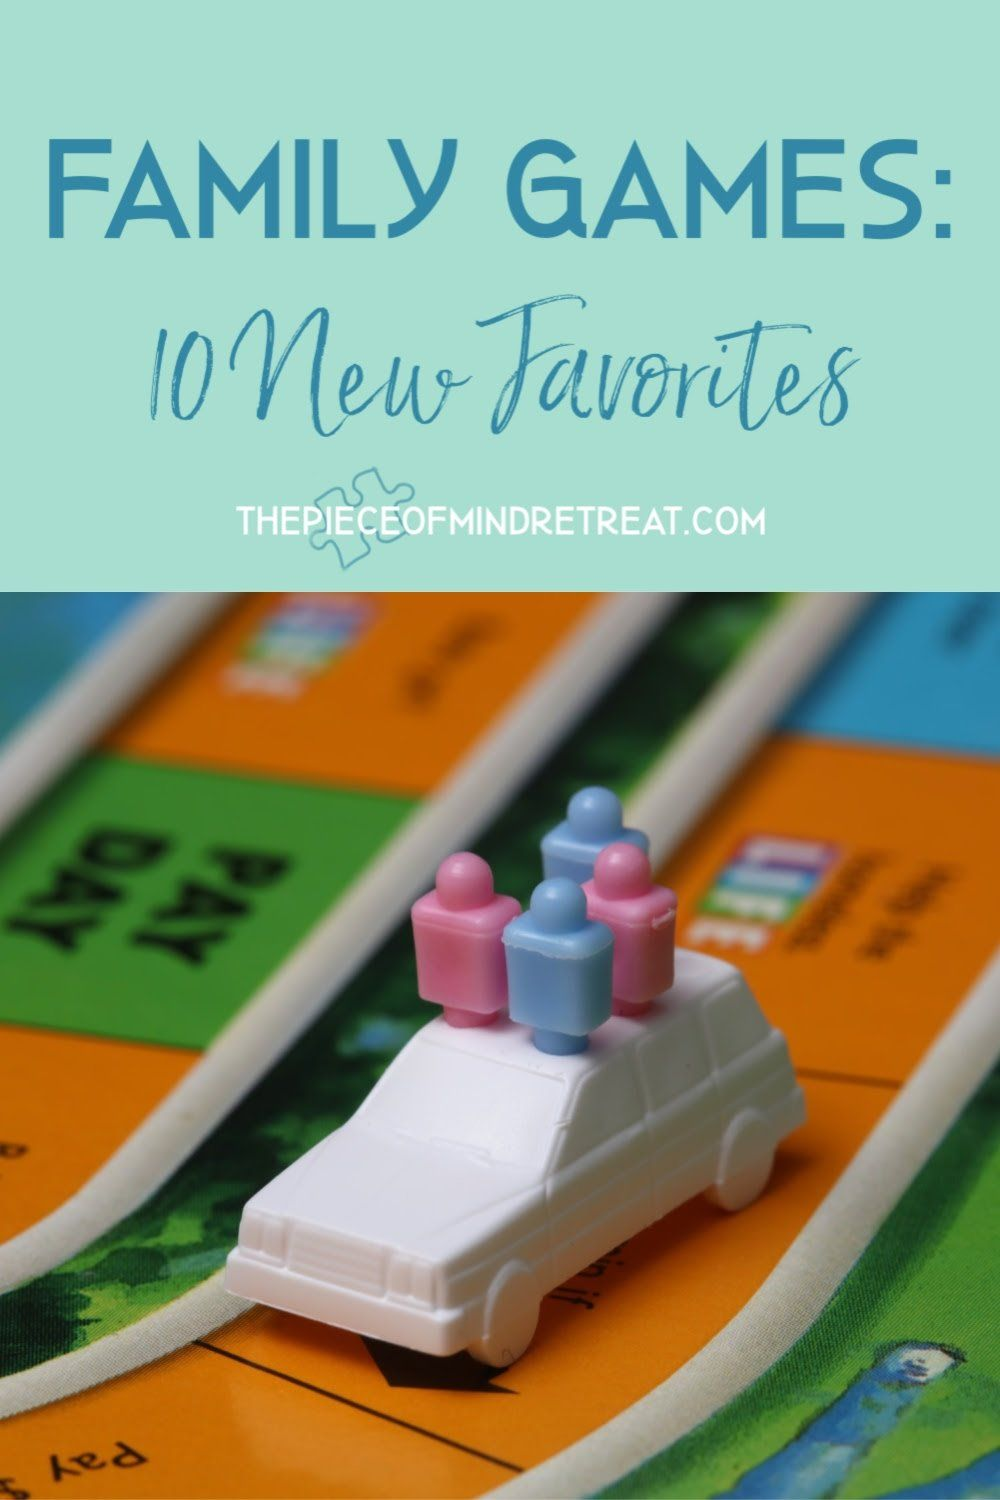 Photo of Family Games: 10 New Favorites